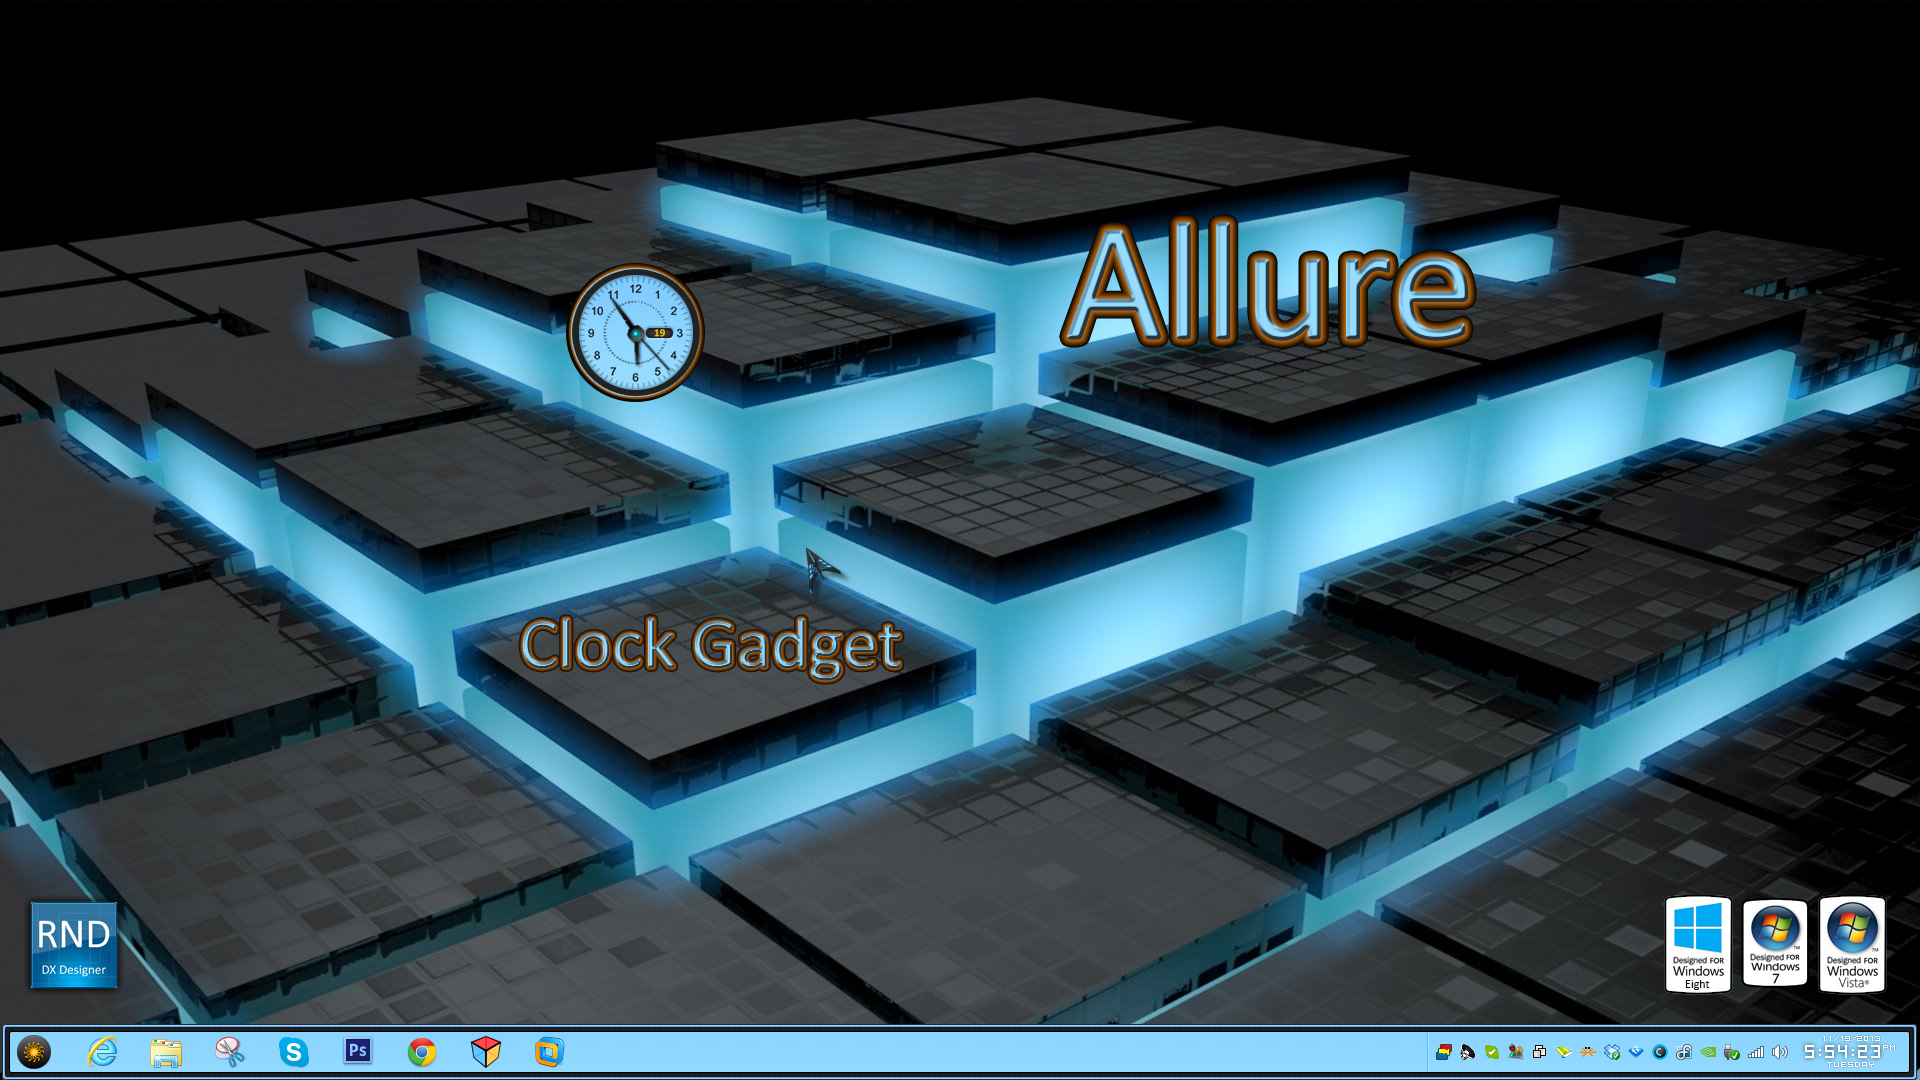 Allure Clock Gadget